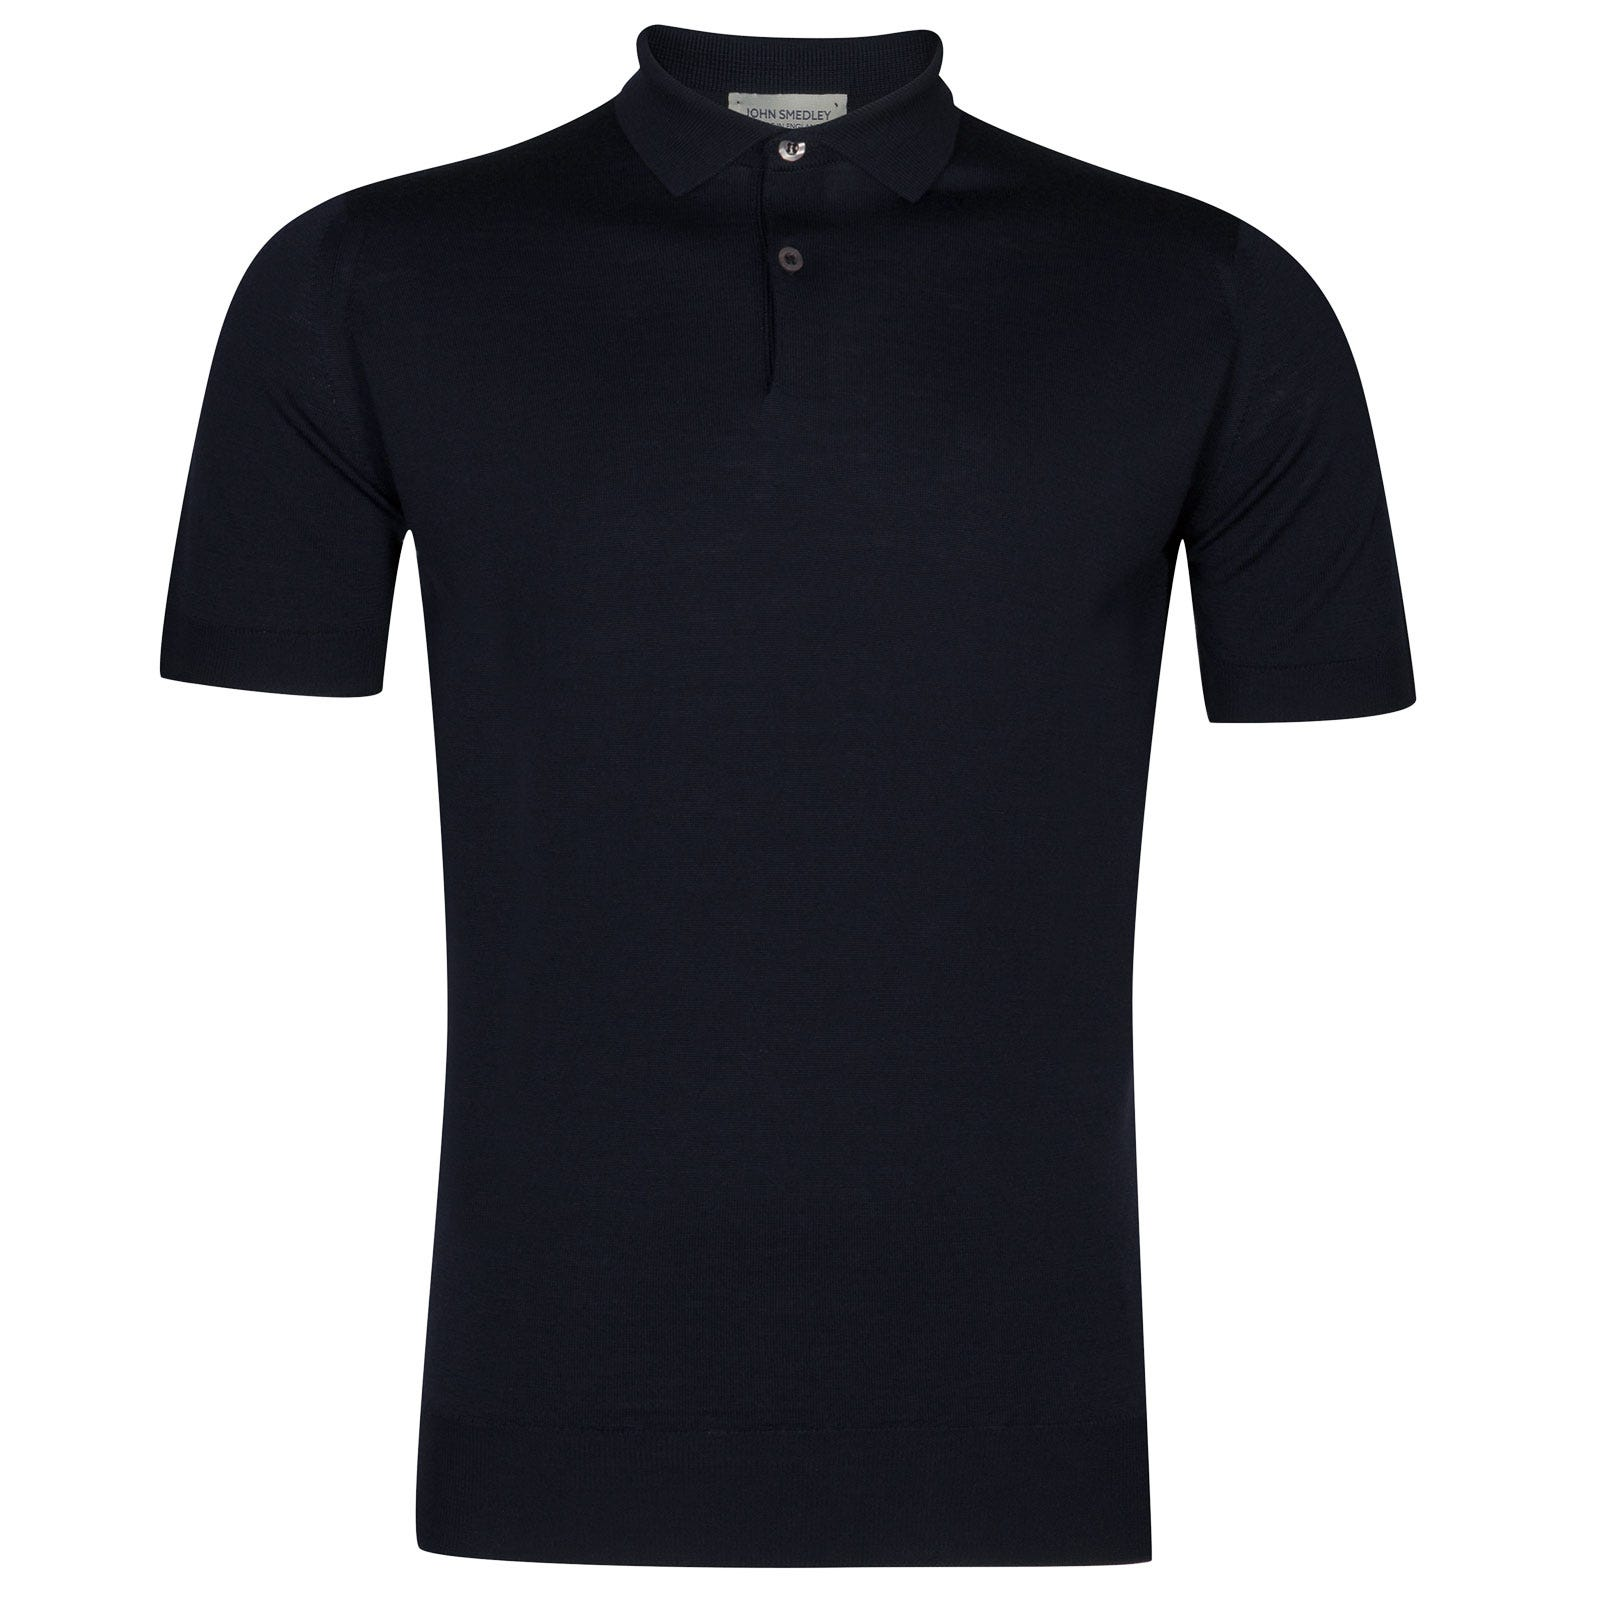 John Smedley payton Merino Wool Shirt in Midnight-XL